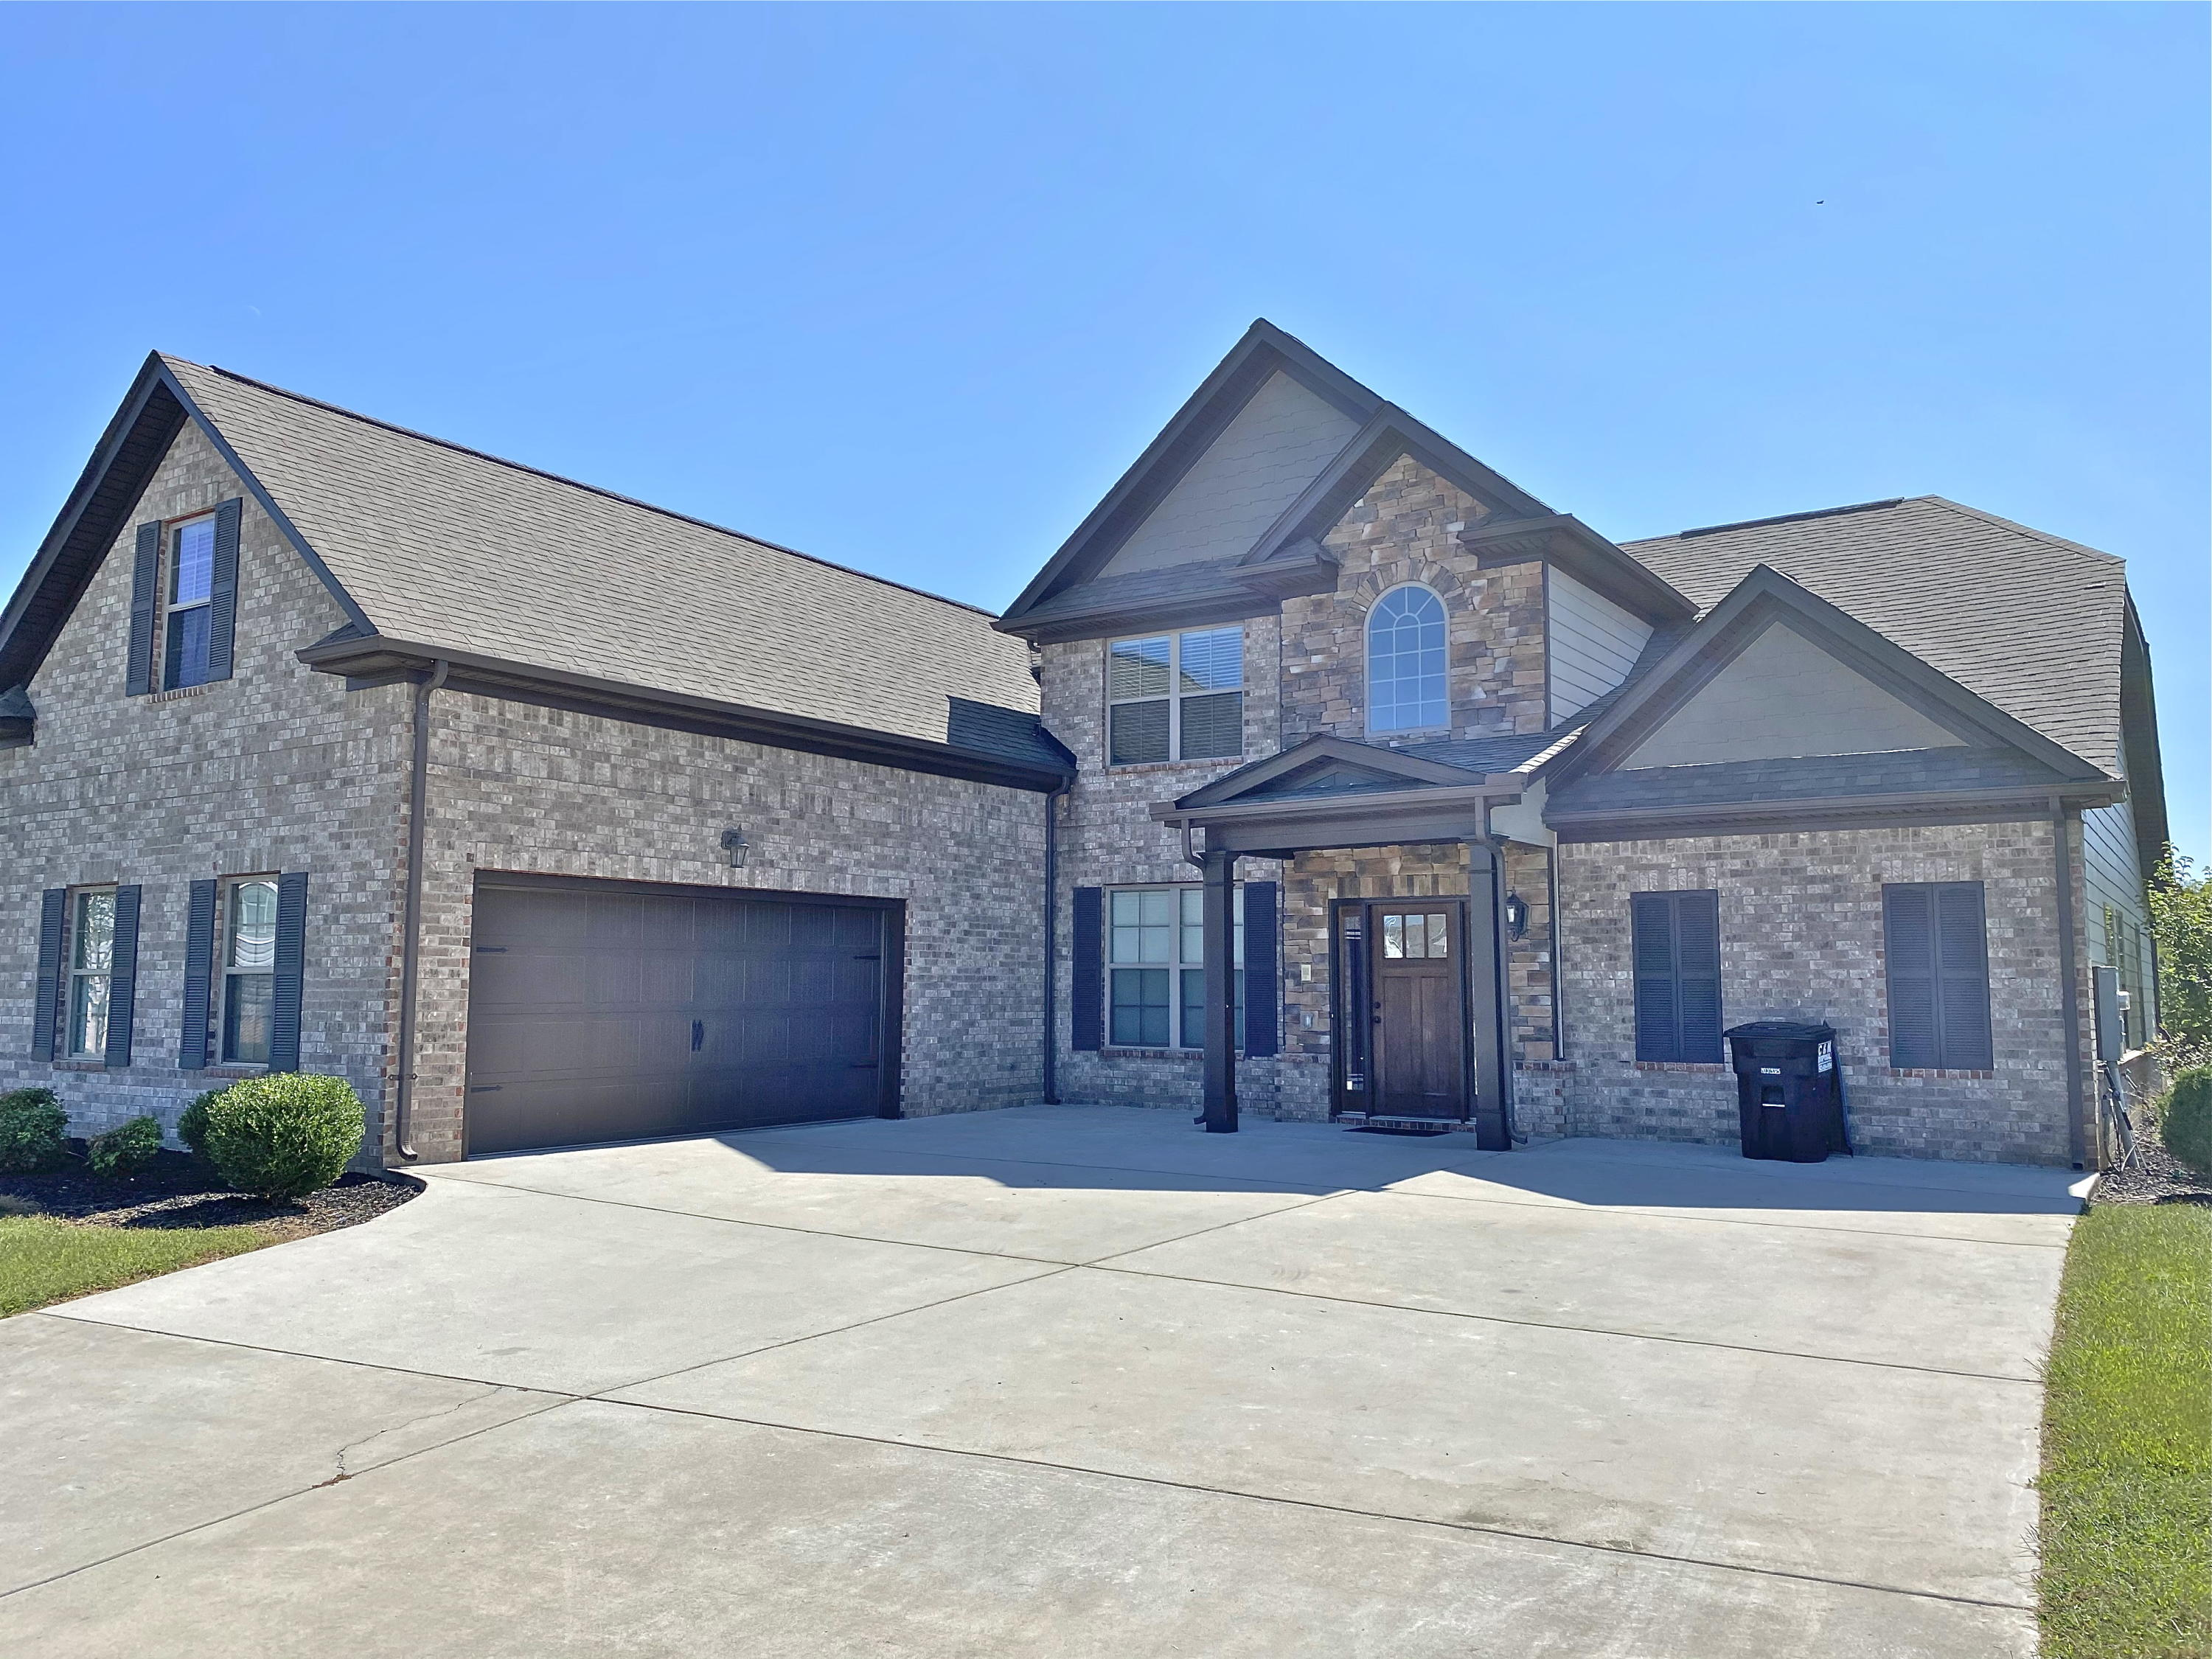 Details for 7314 Blazing Star, Ooltewah, TN 37363